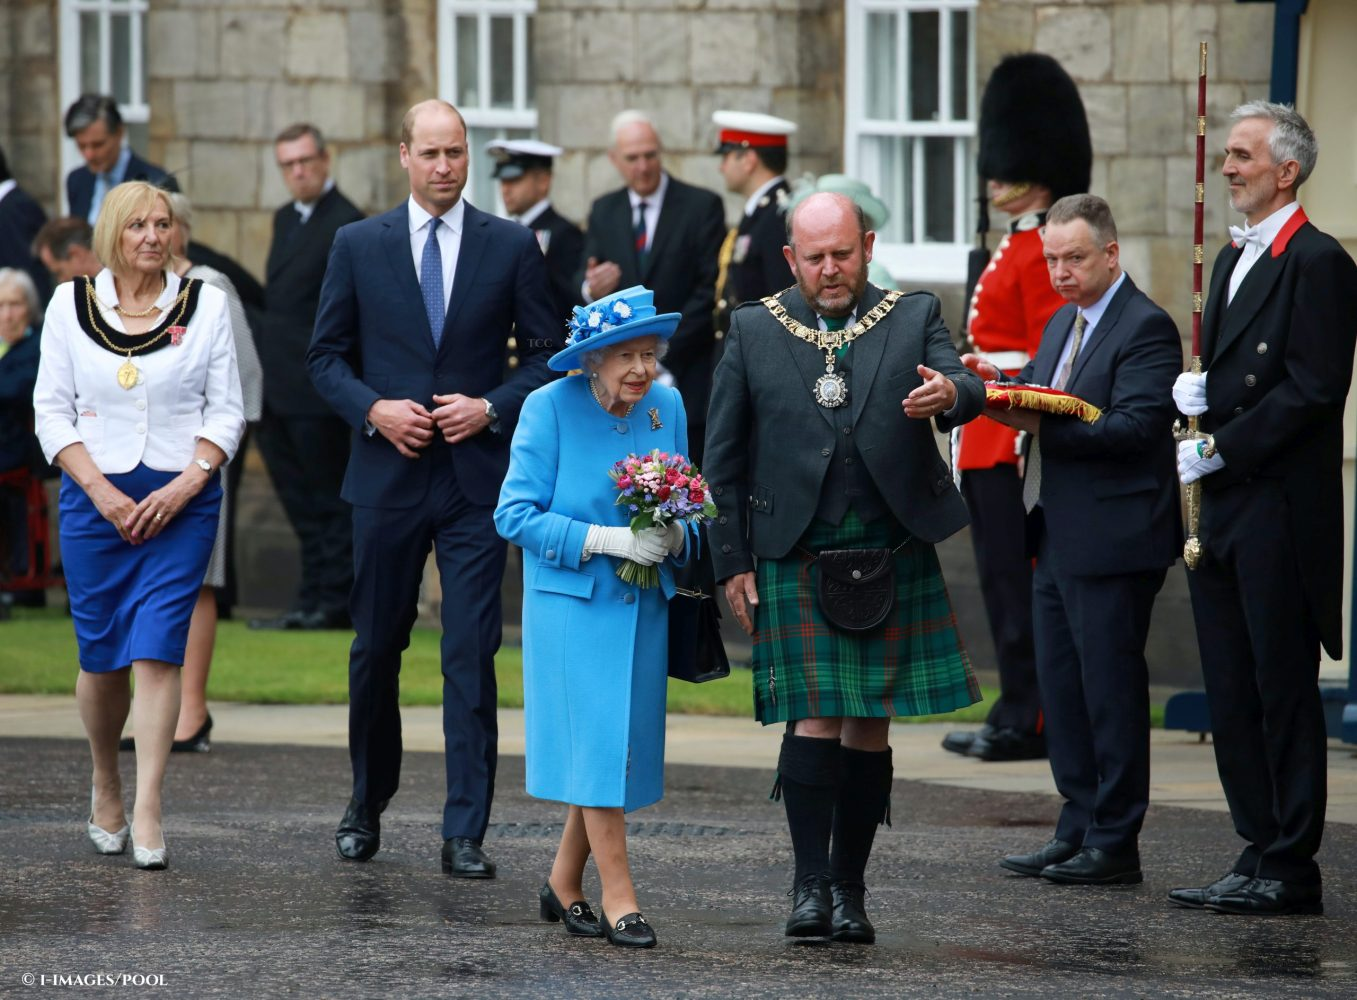 The Queen, accompanied by Prince William, The Duke of Cambridge, at the Ceremony of the Keys at the Palace of Holyroodhouse in Edinburgh